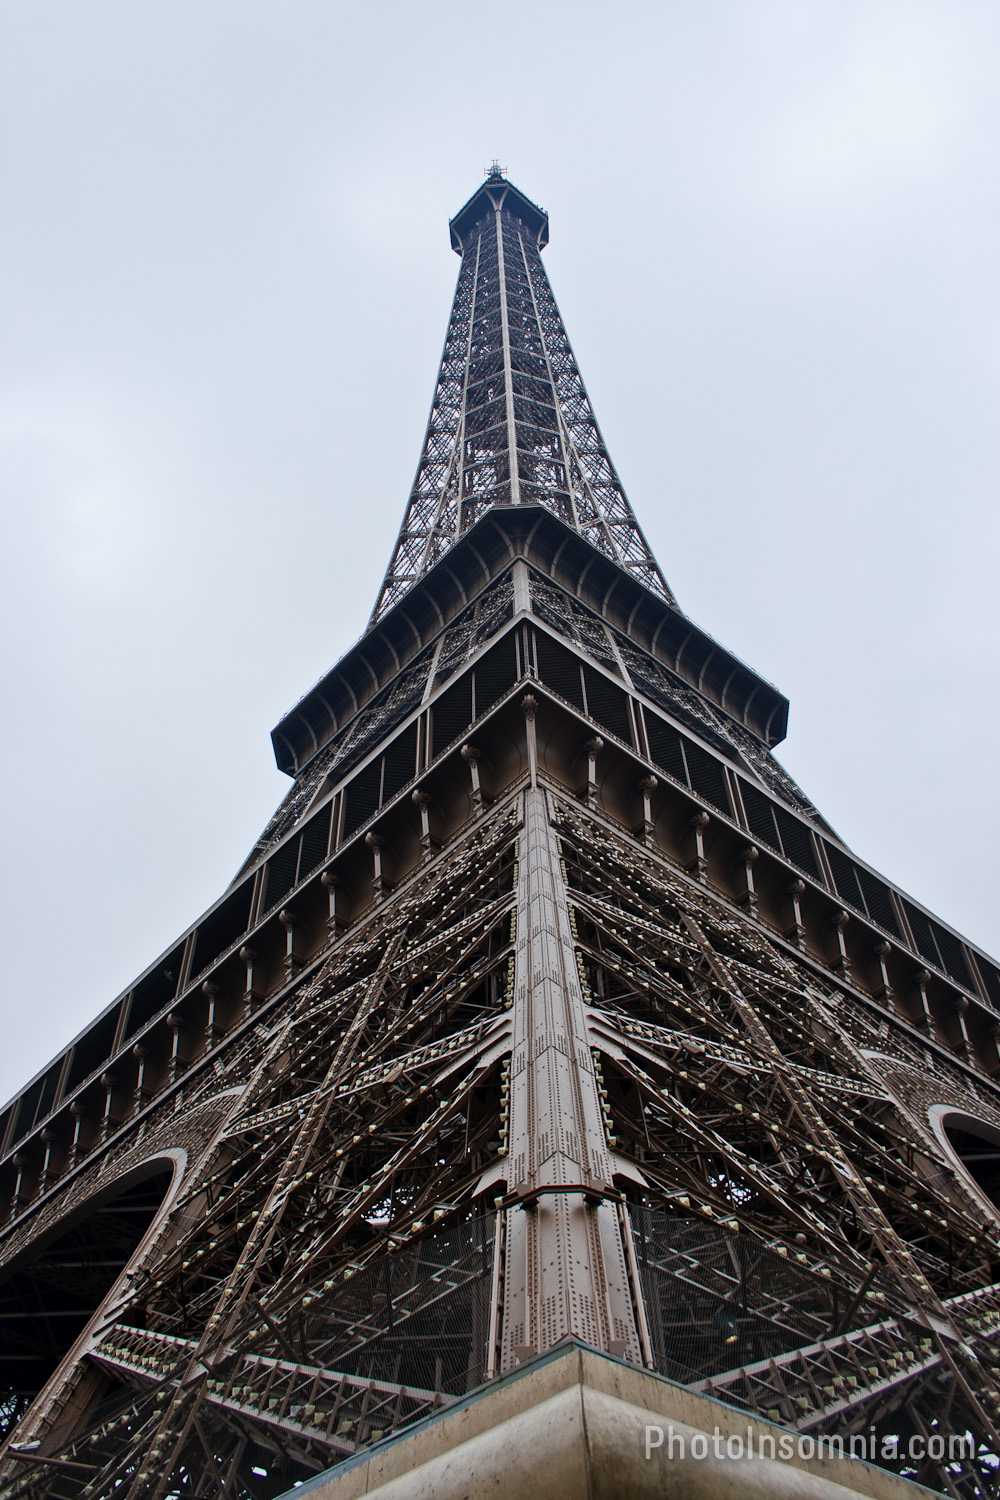 Eiffel Tower – 5 June 2011